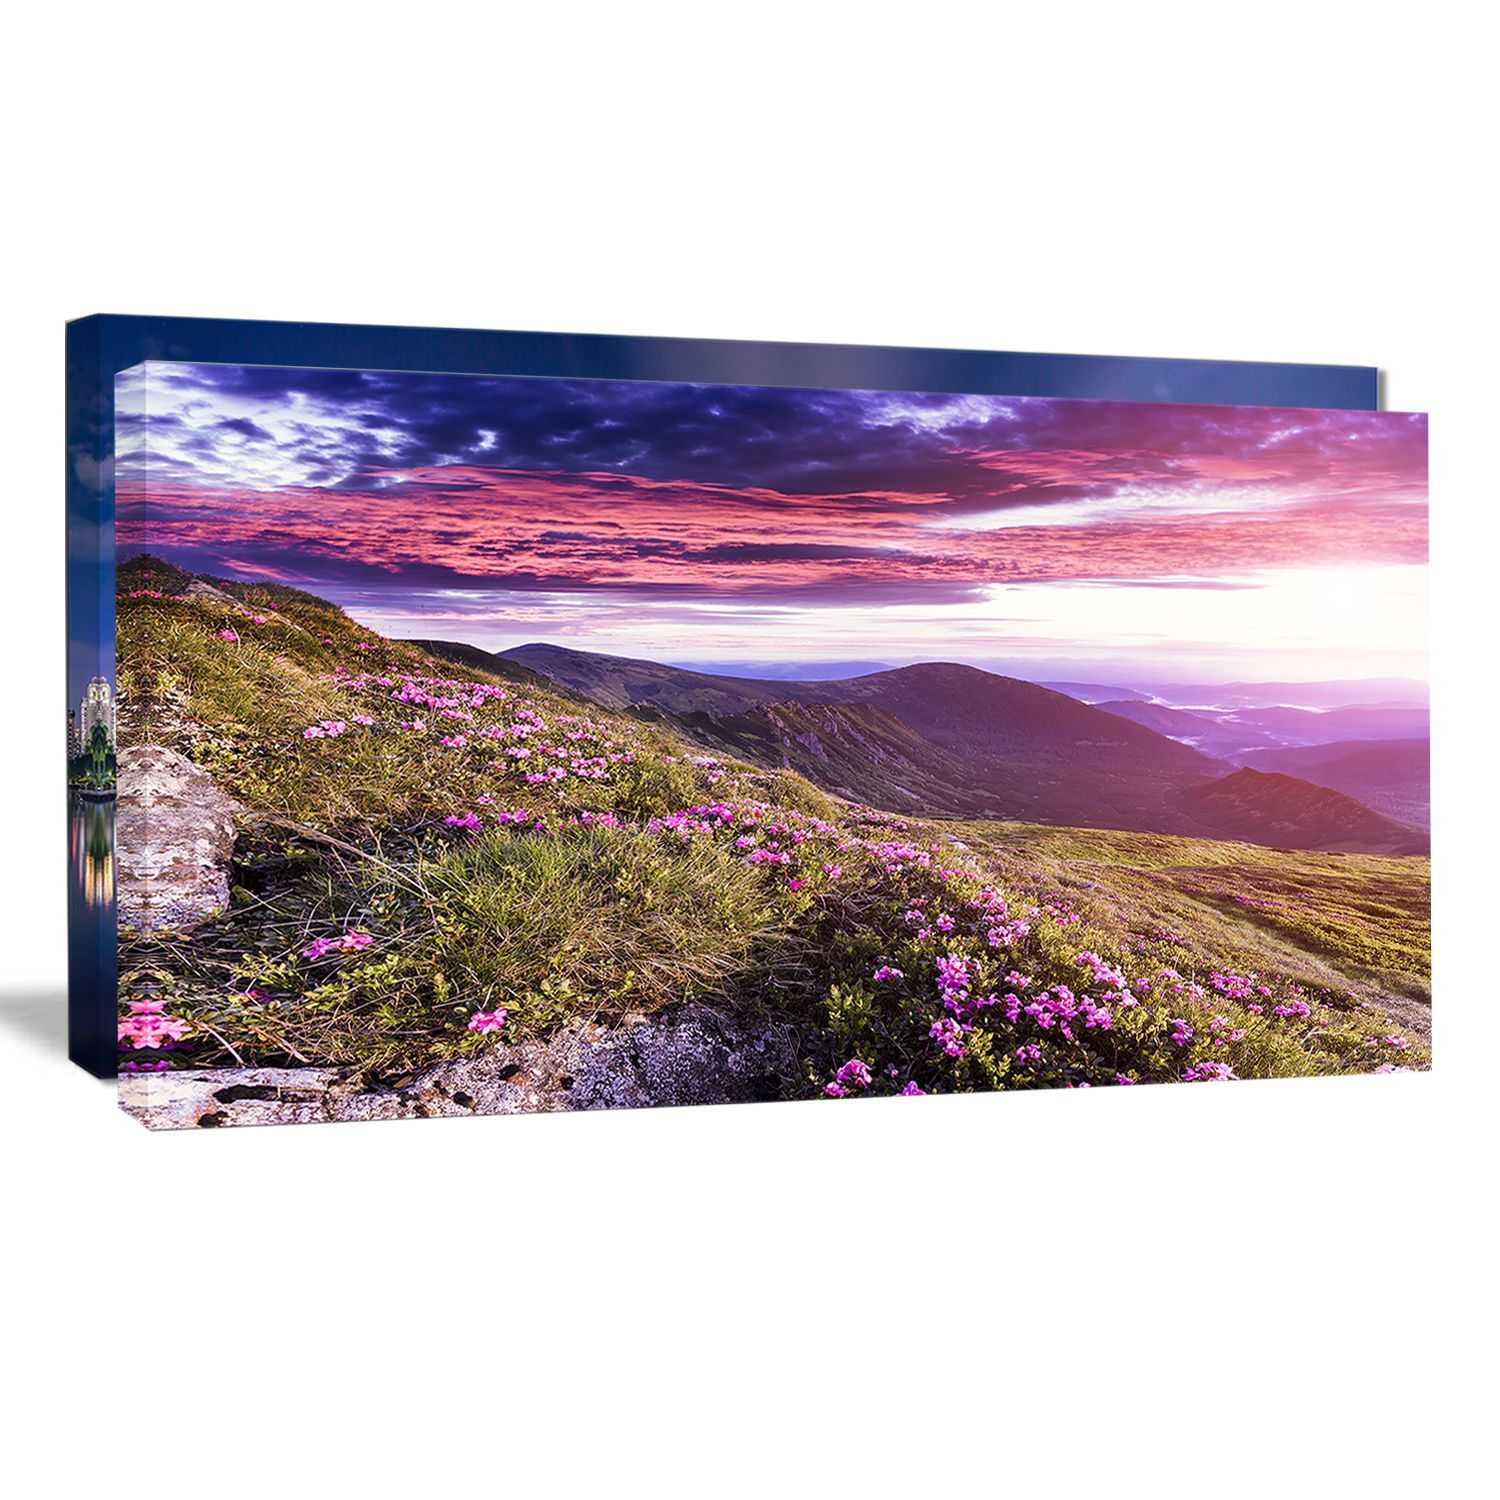 Rhododendron Flowers in Hills - Landscape Photo Art Print